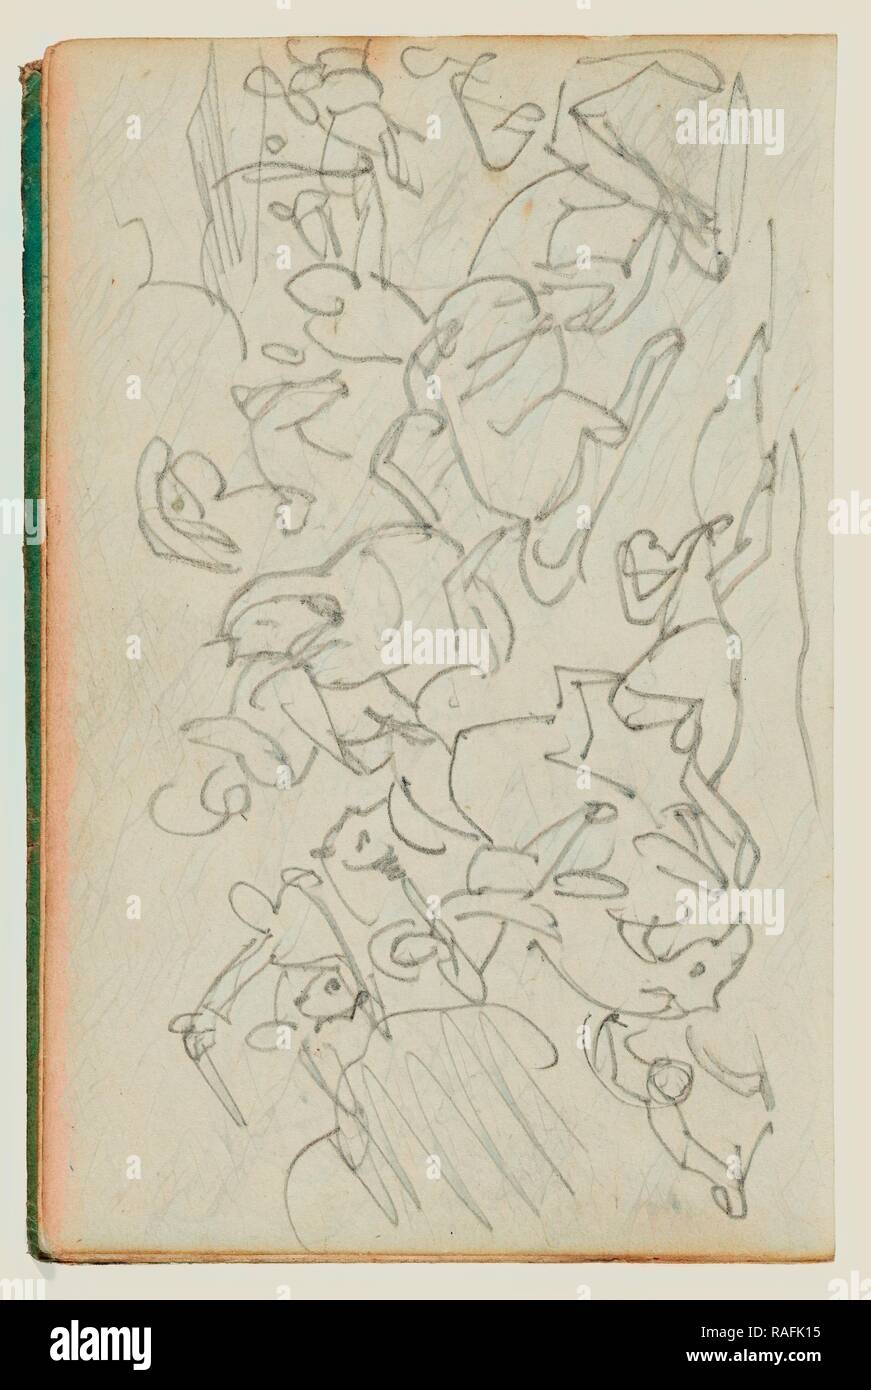 Cavalry Battle, Théodore Géricault (French, 1791 - 1824), 1812 - 1814, Graphite, 15.2 x 10.6 cm (6 x 4 3,16 in reimagined - Stock Image